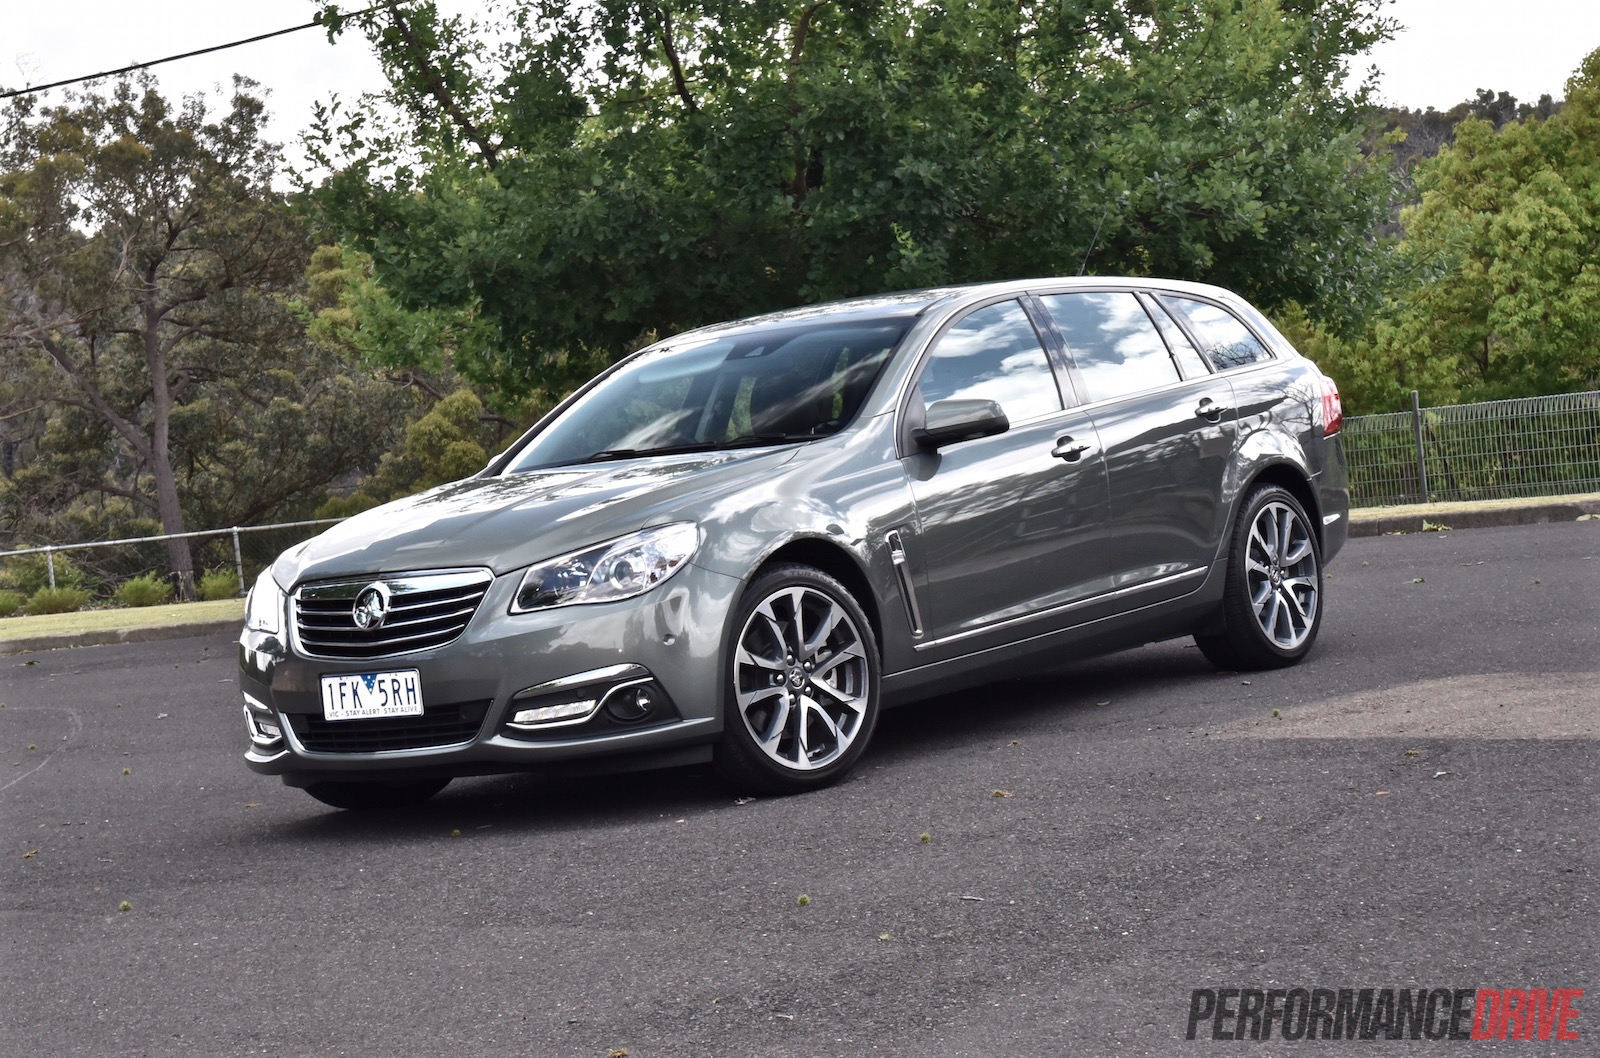 2016 Holden Calais V Sportwagon Vf Ii V8 Review Video